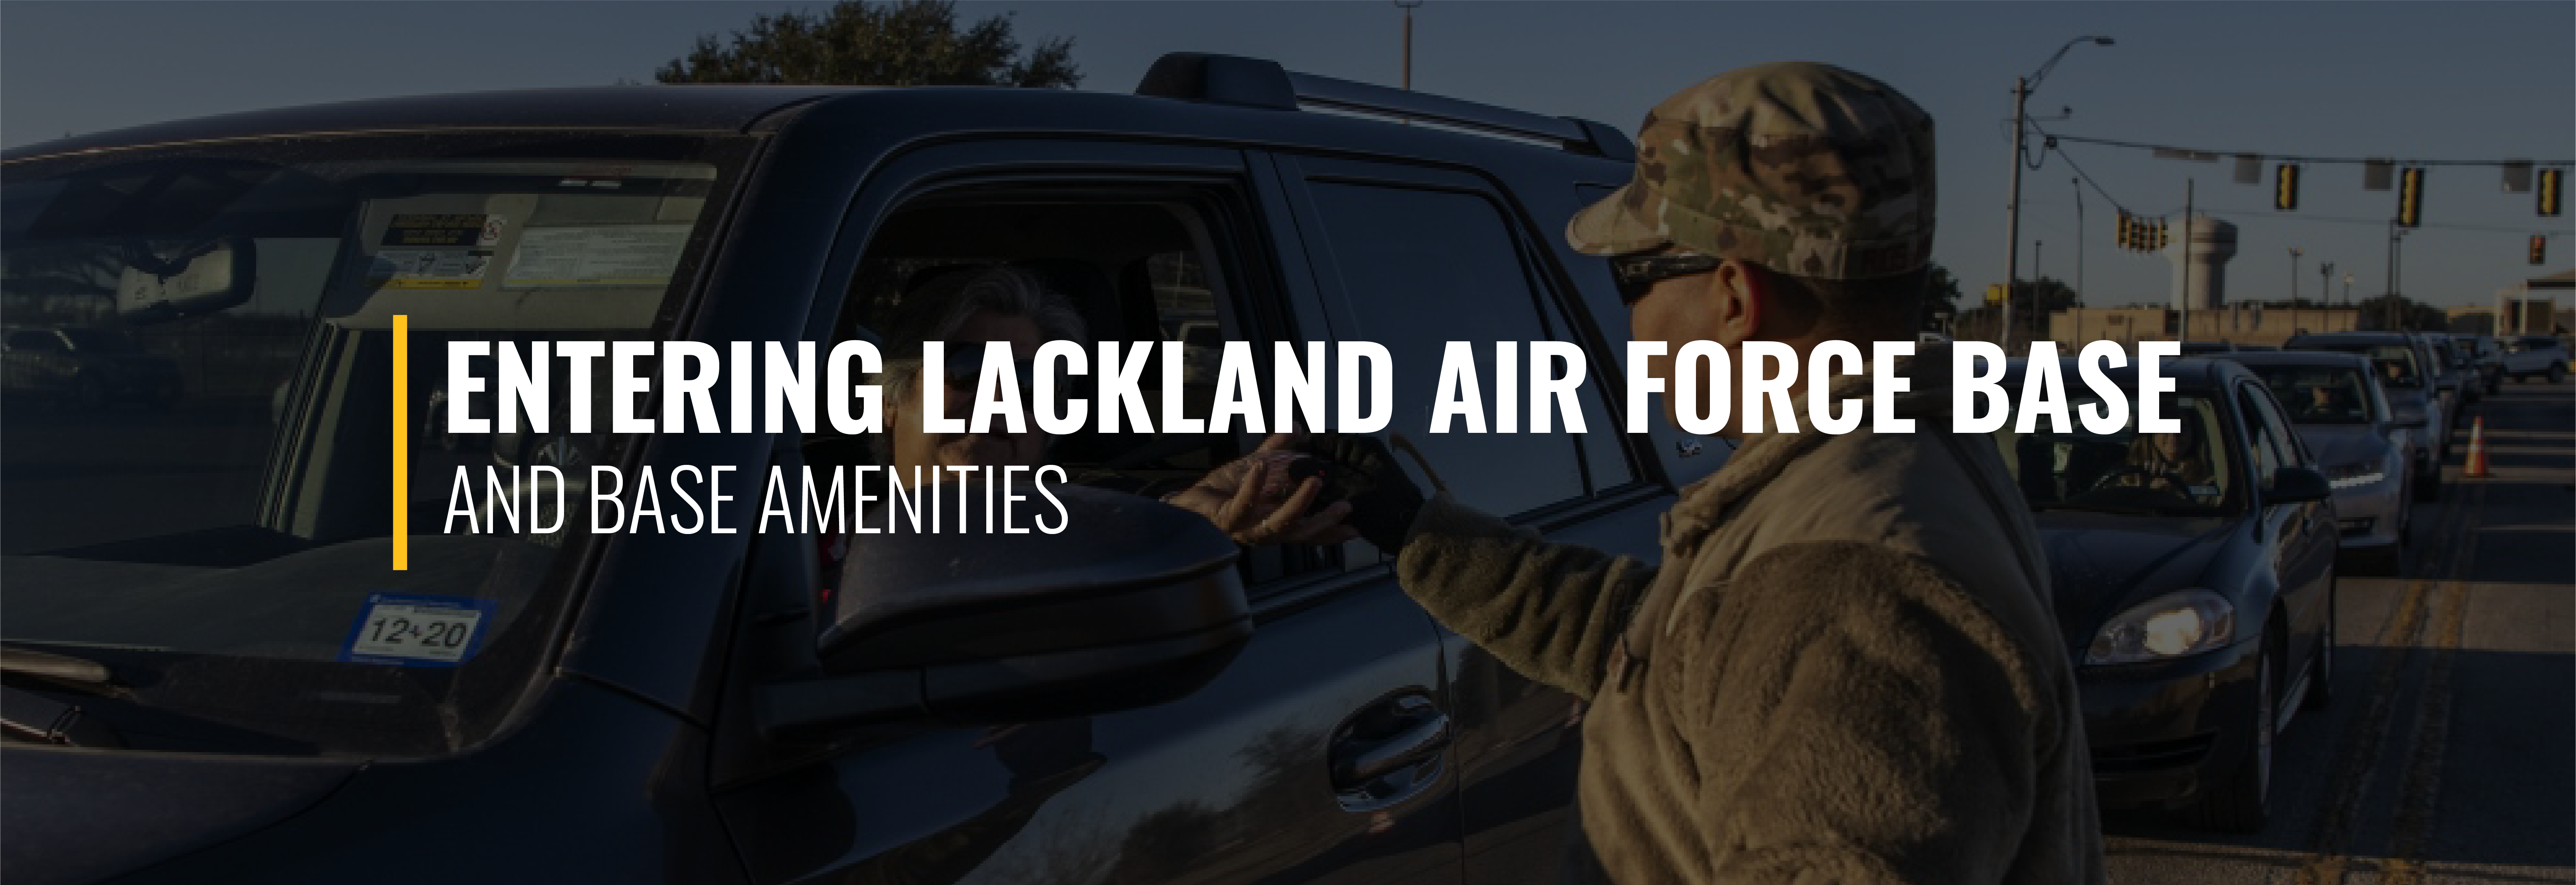 Entering Lackland Air Force Base and Base Amenities